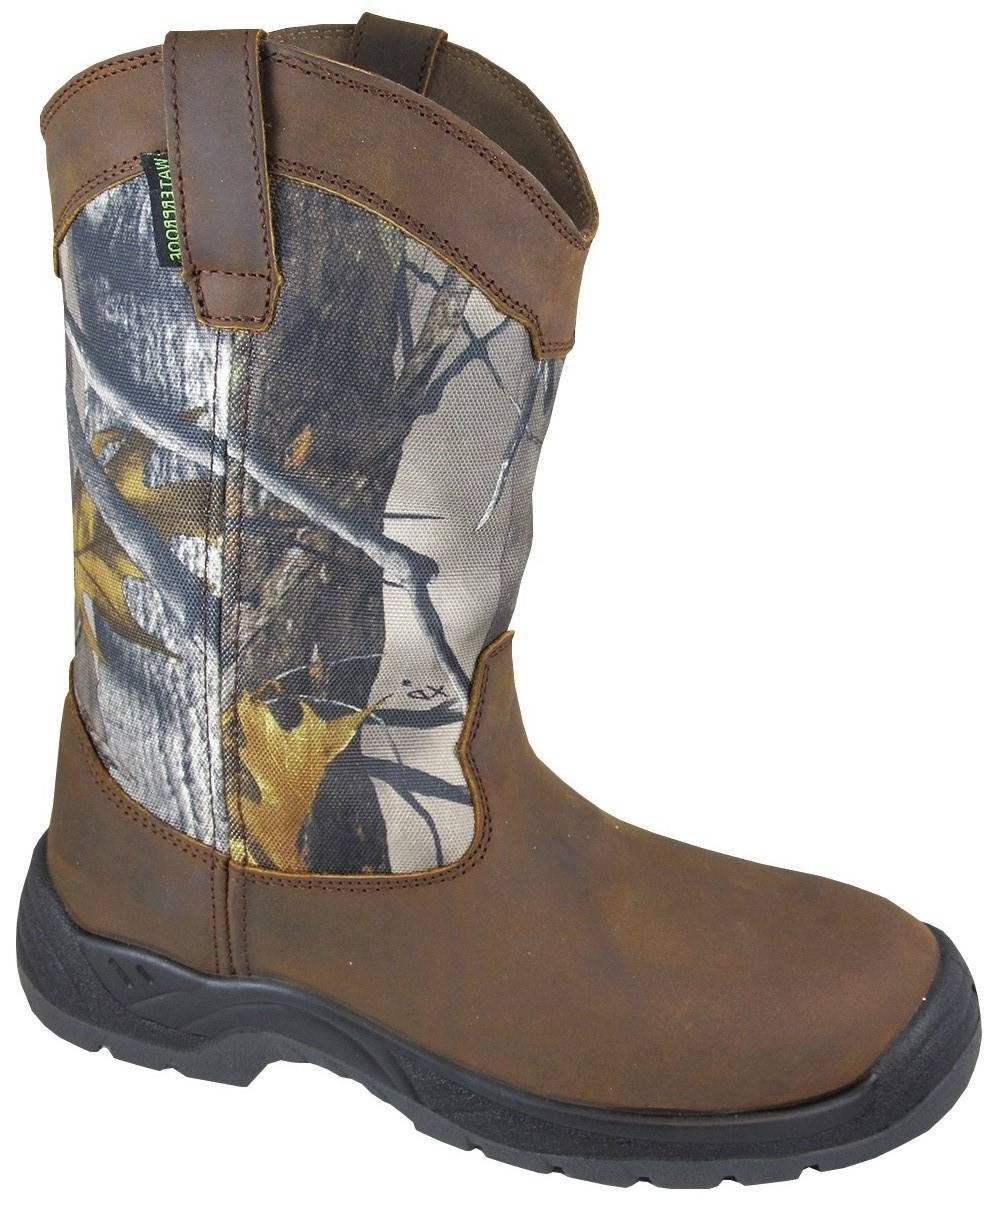 Smoky Mountain Brushfield Steel Toe Waterproof Wellington - Mens